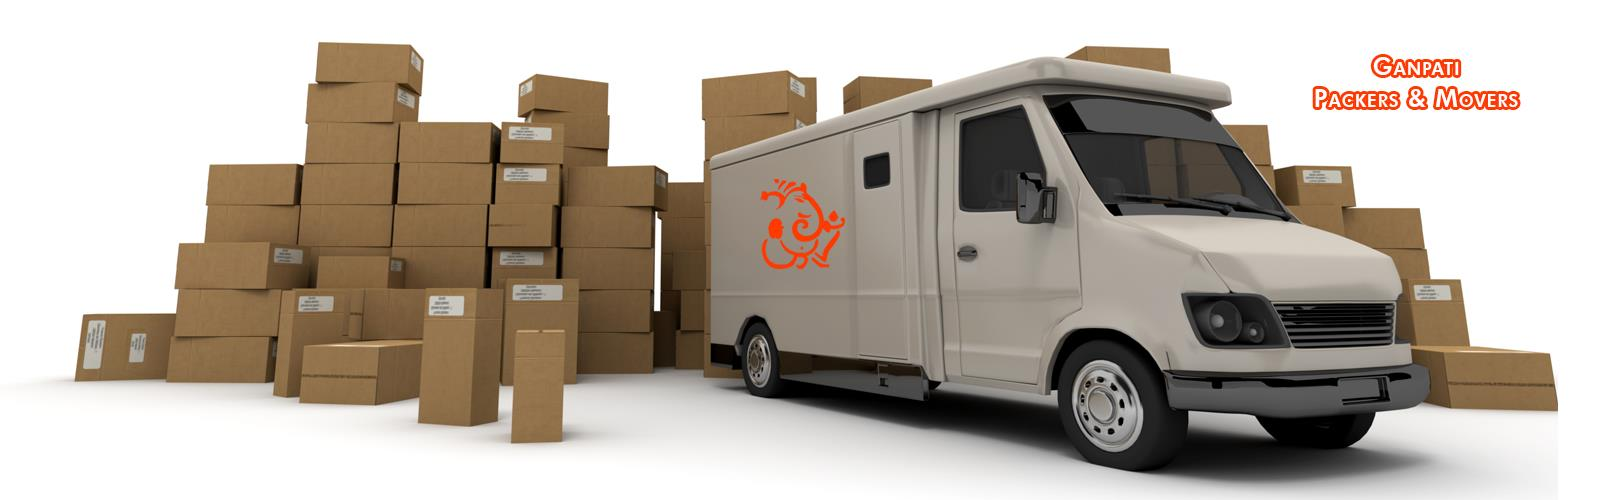 FINE ART MOVING professional packing of painting & sculptures packing in custom made reusable cartons and plywood boxes multi pal destination moving for exhibitions assistance in unpacking, setting up & repacking after exhibitions full time - by Nowfloatsdemo, Ahmedabad